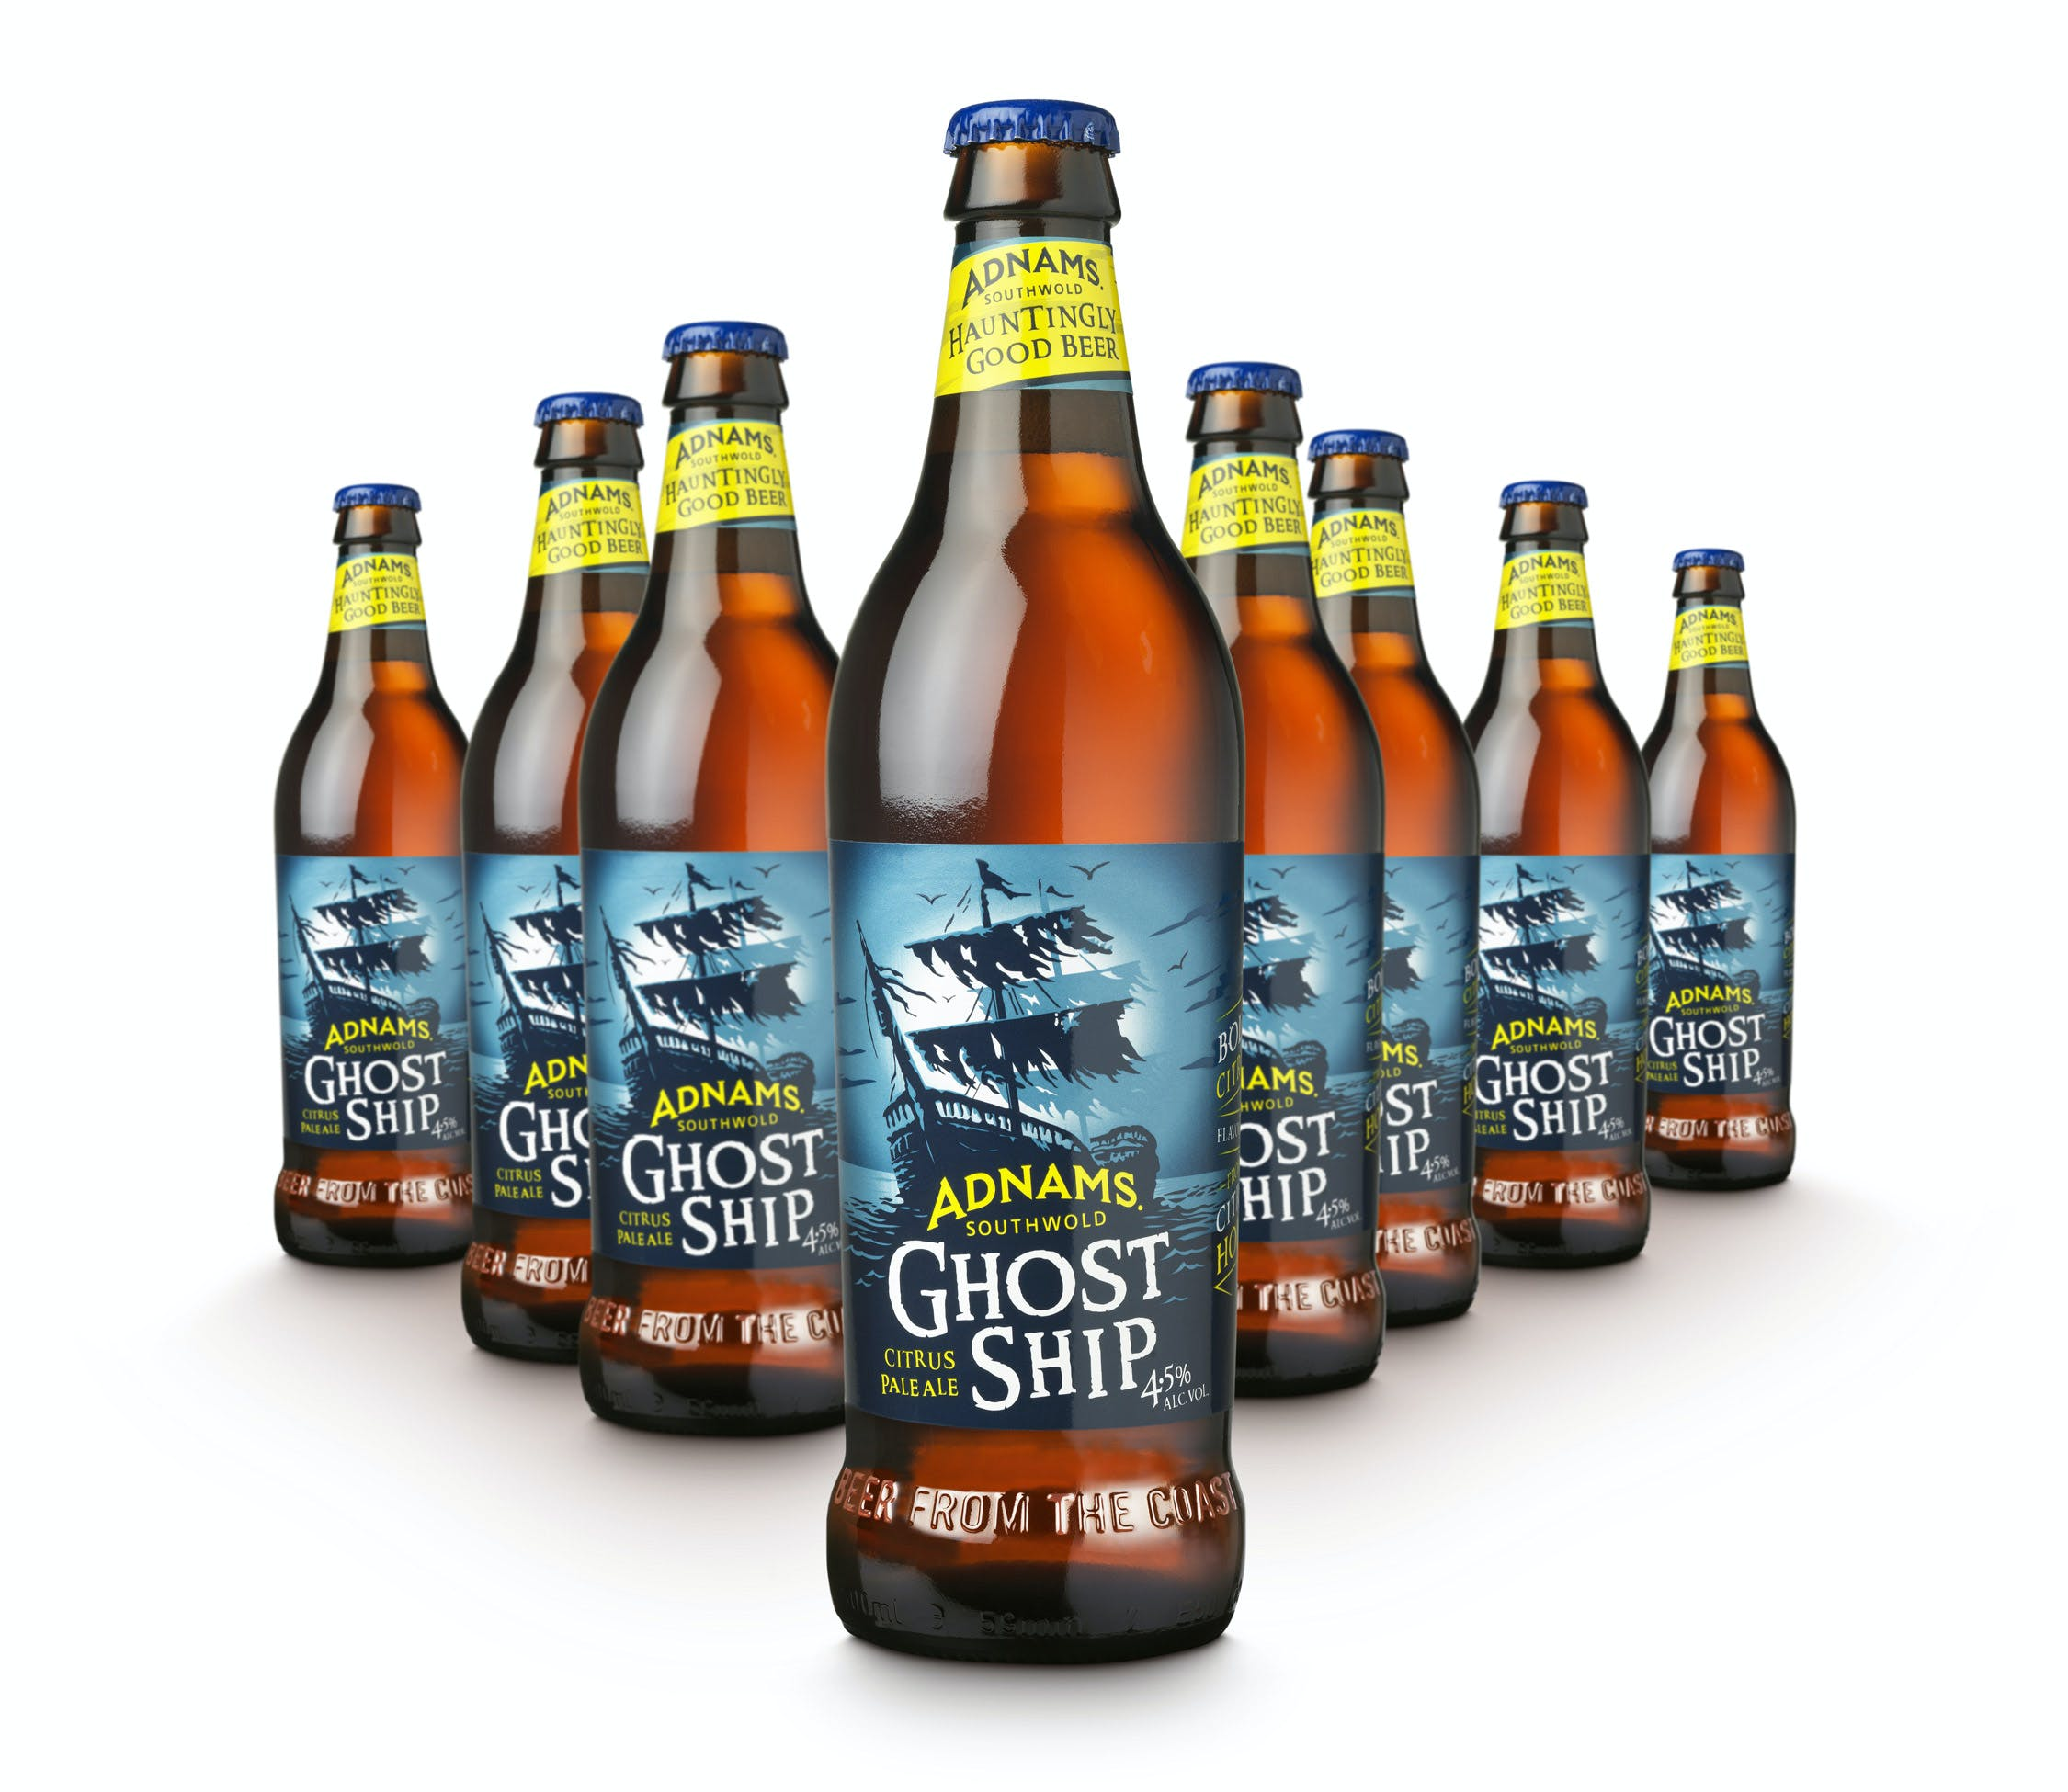 Stockists of Adnams Ghost Ship Gift Set